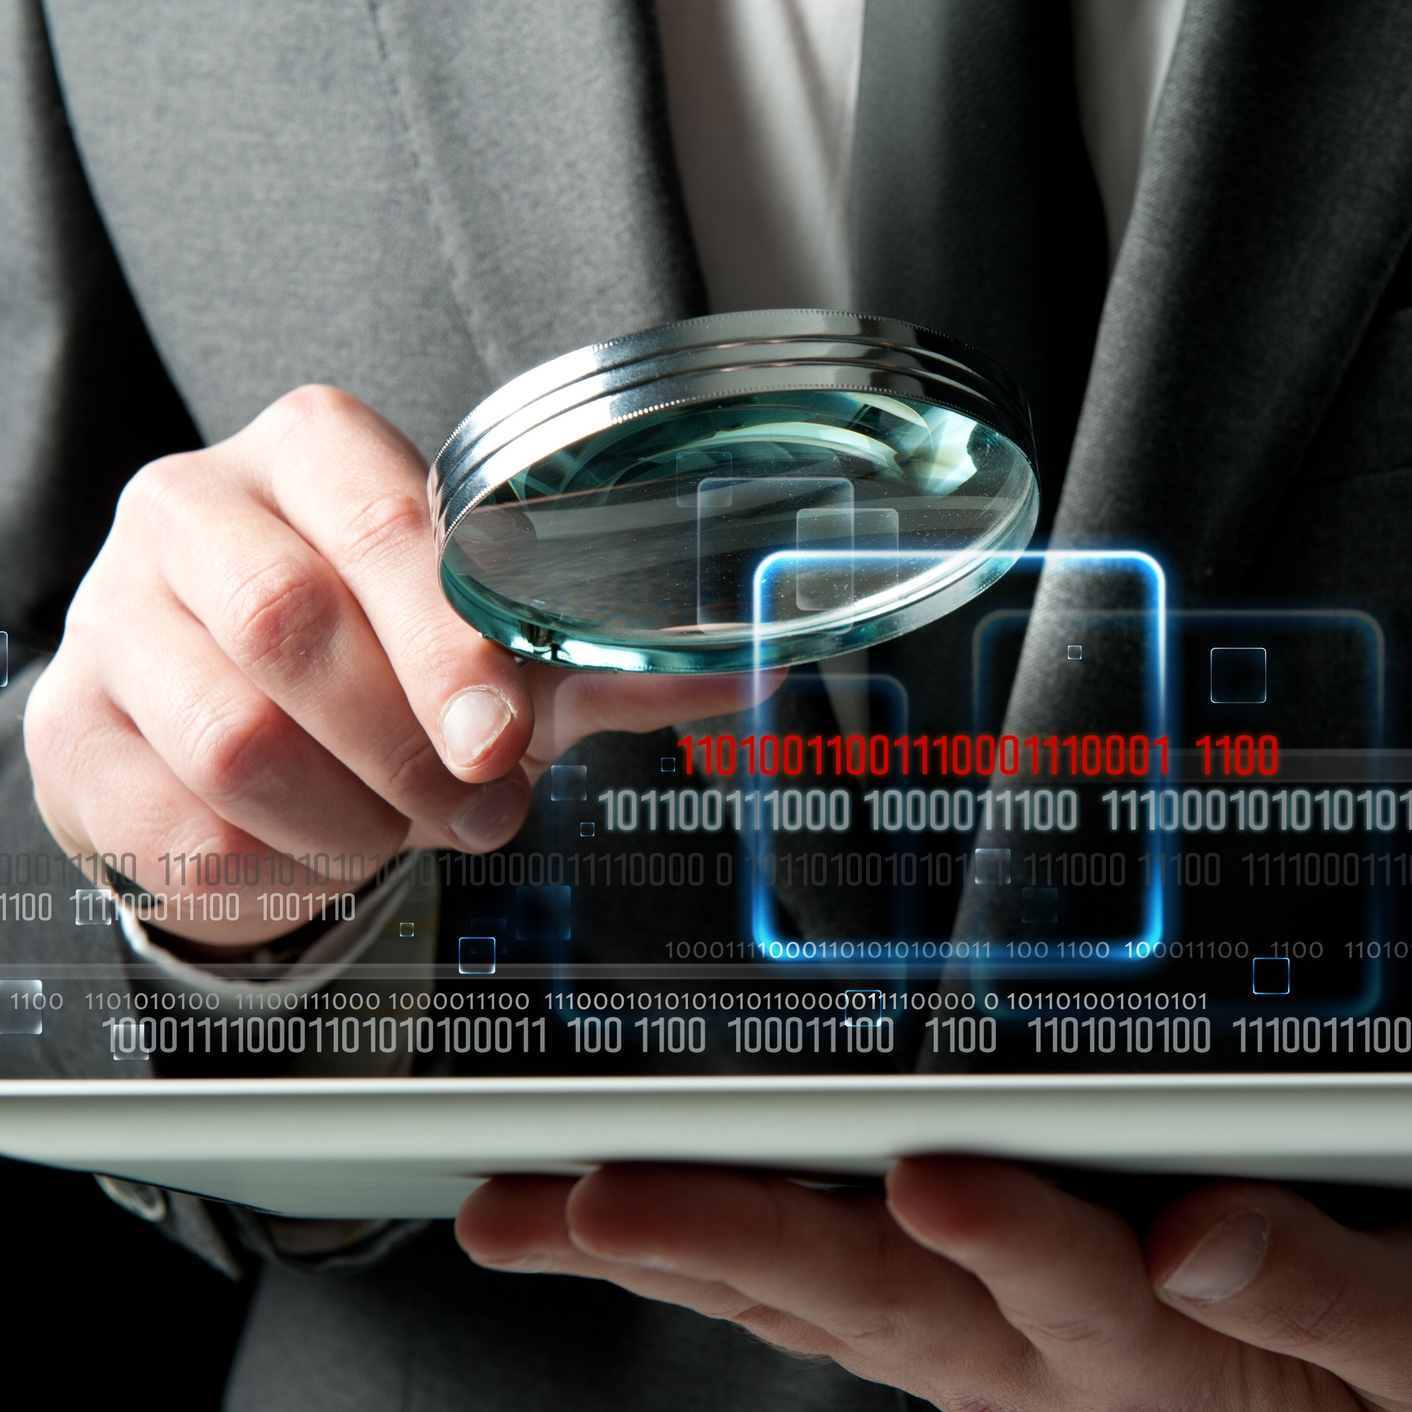 Cybersecurity Assessments & Data Collection